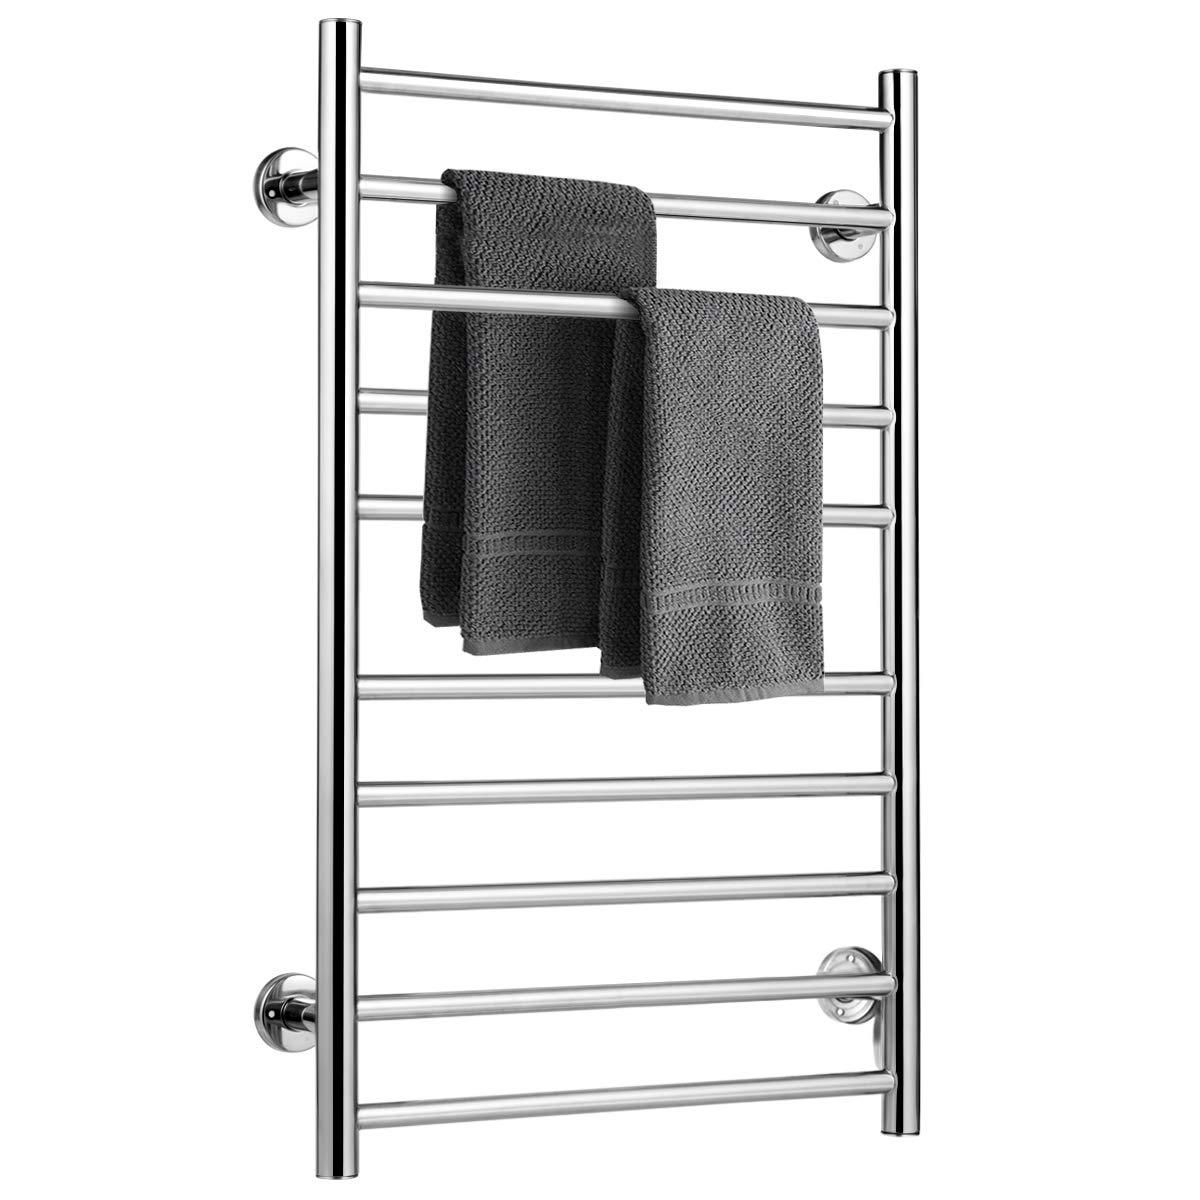 Buy Tangkula Towel Warmer Home Bathroom 10 Bar Stainless Steel Space Saving Plug In Wall Mounted Cloth Towel Heated Drying Rack 20 W X 31 5 H At Diane Beauty Supply For Only 287 98